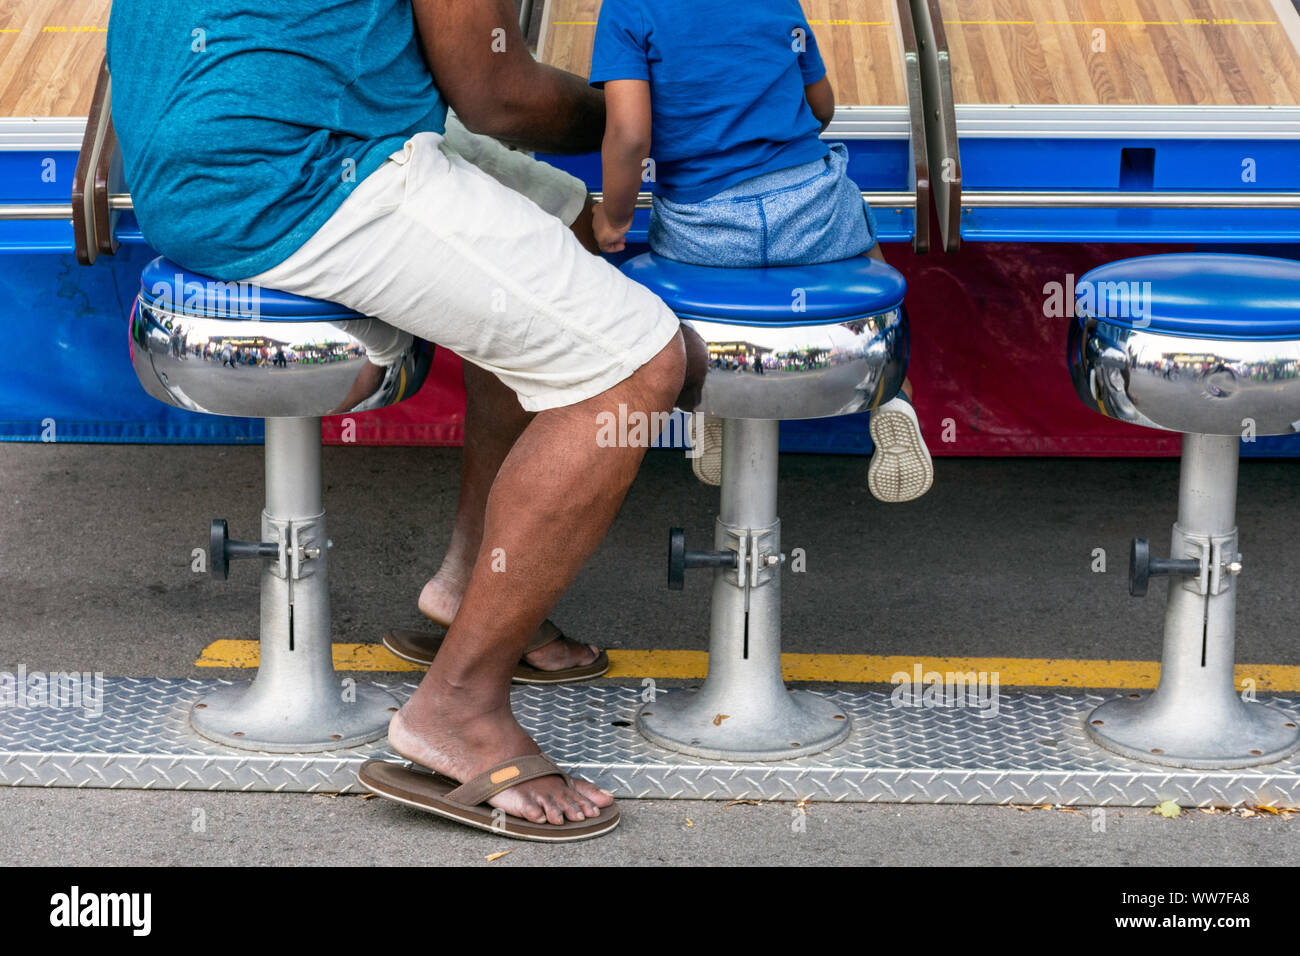 A young boy and his father enjoy playing a carnival midway game together, evoking the concepts of love, togetherness, and quality time. Stock Photo